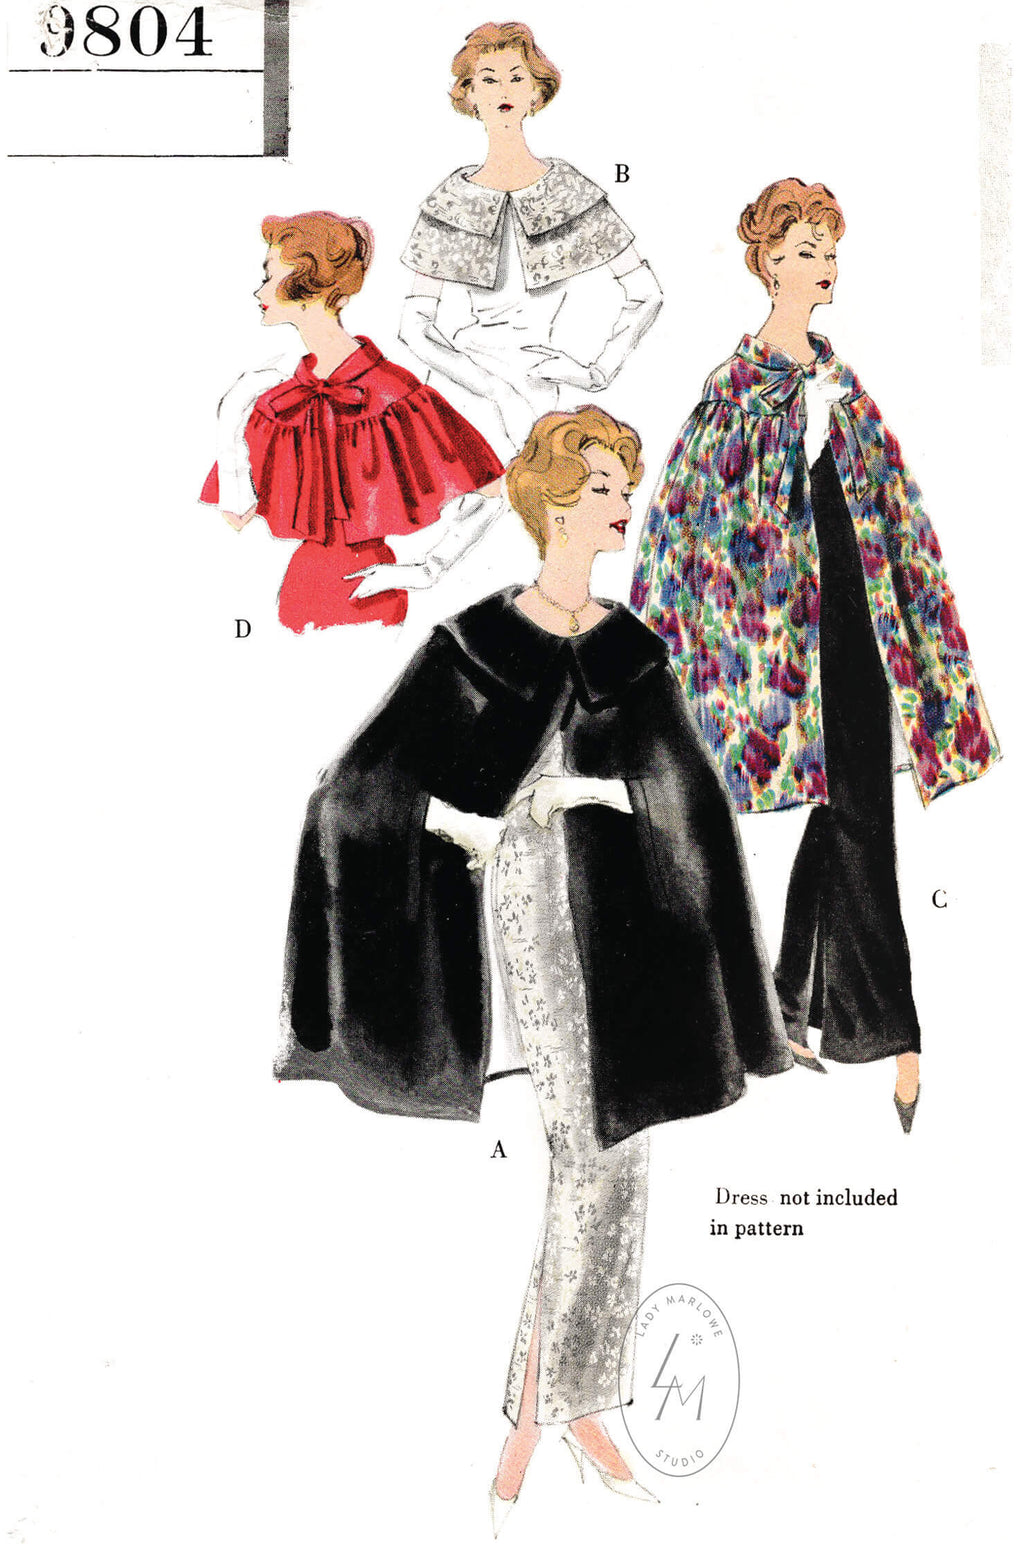 1950s 1960s capes capelets in 4 styles evening cocktail occasion vintage sewing pattern reproduction Vogue 9804